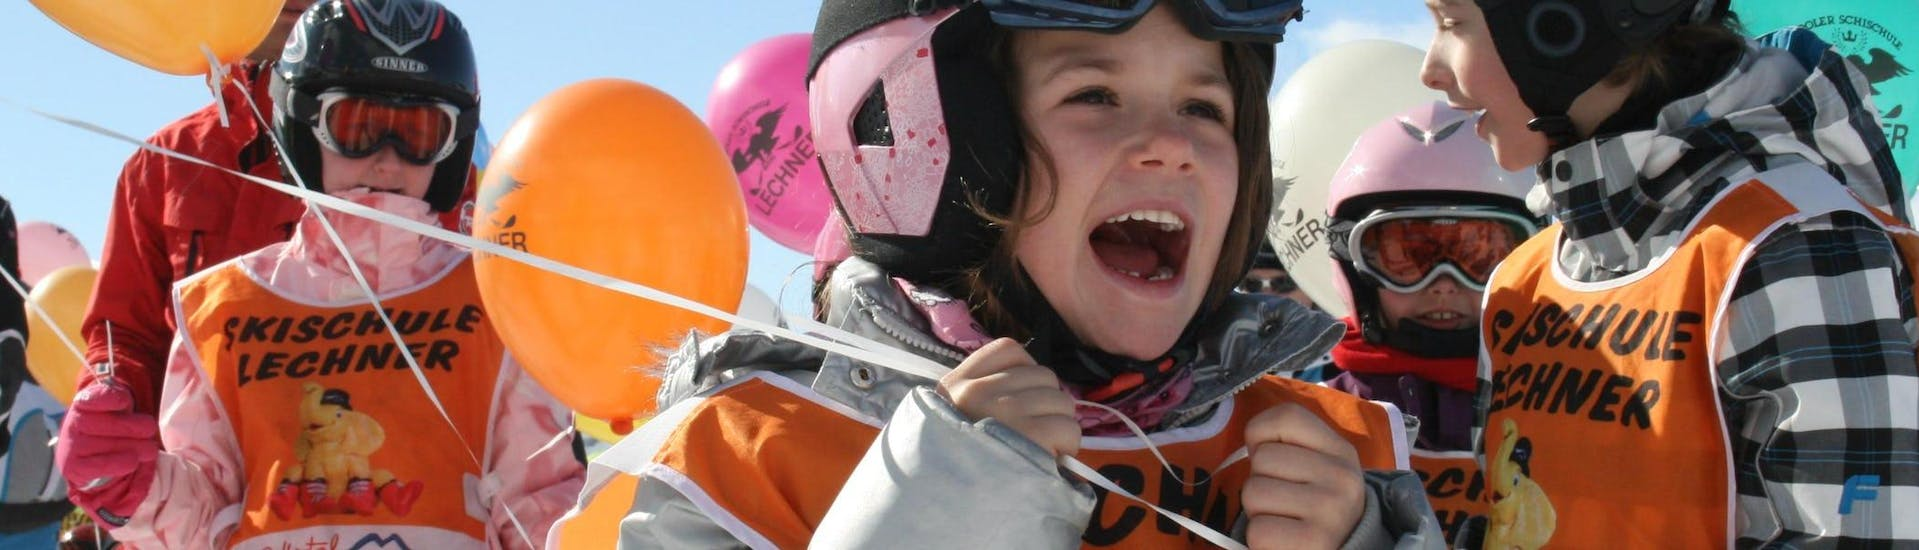 Several children taking part in the Kids Ski Lessons (5-14 years) - Advanced organised by the ski school Skischule Lechner are holding balloons with the ski school's logo printed on them.